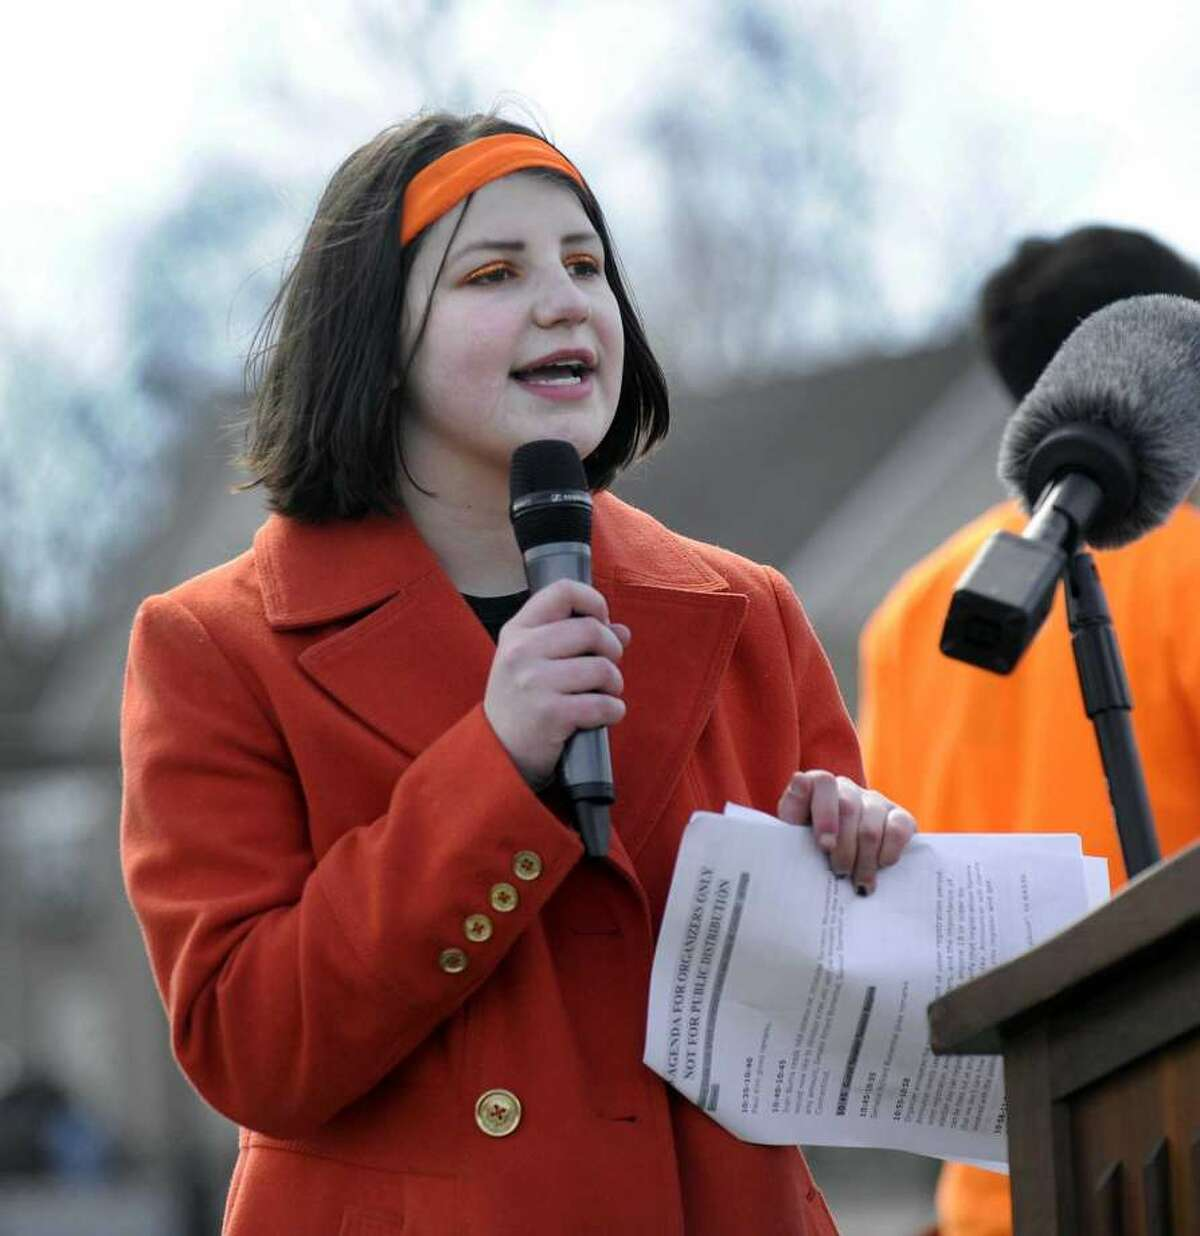 Lane Murdock speaks during the National School Walkout at Ridgefield High School last April. Next week she will attend the State of the Union in Washington. - Carol Kaliff / Hearst Connecticut Media